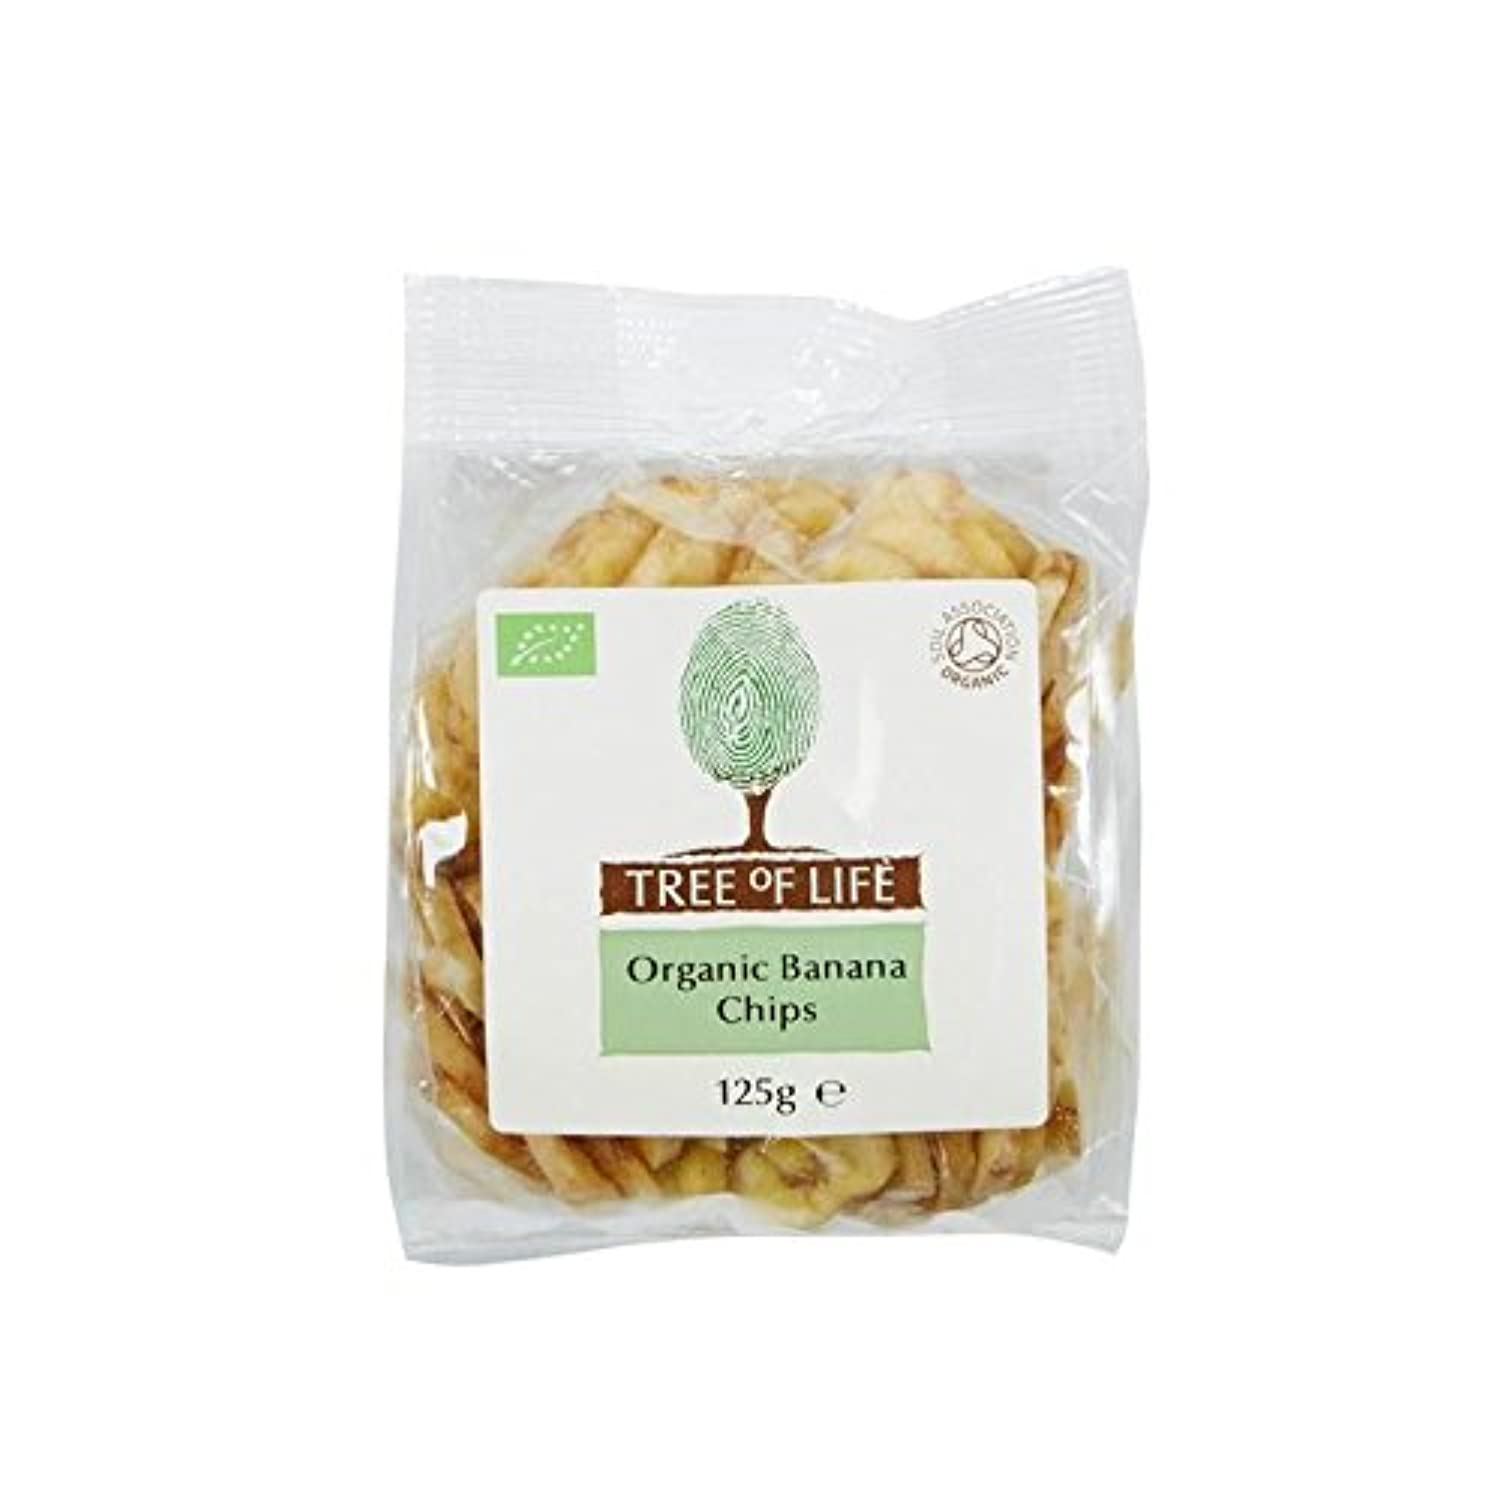 Tree of Life Organic Banana Chips 125g - Pack of 2